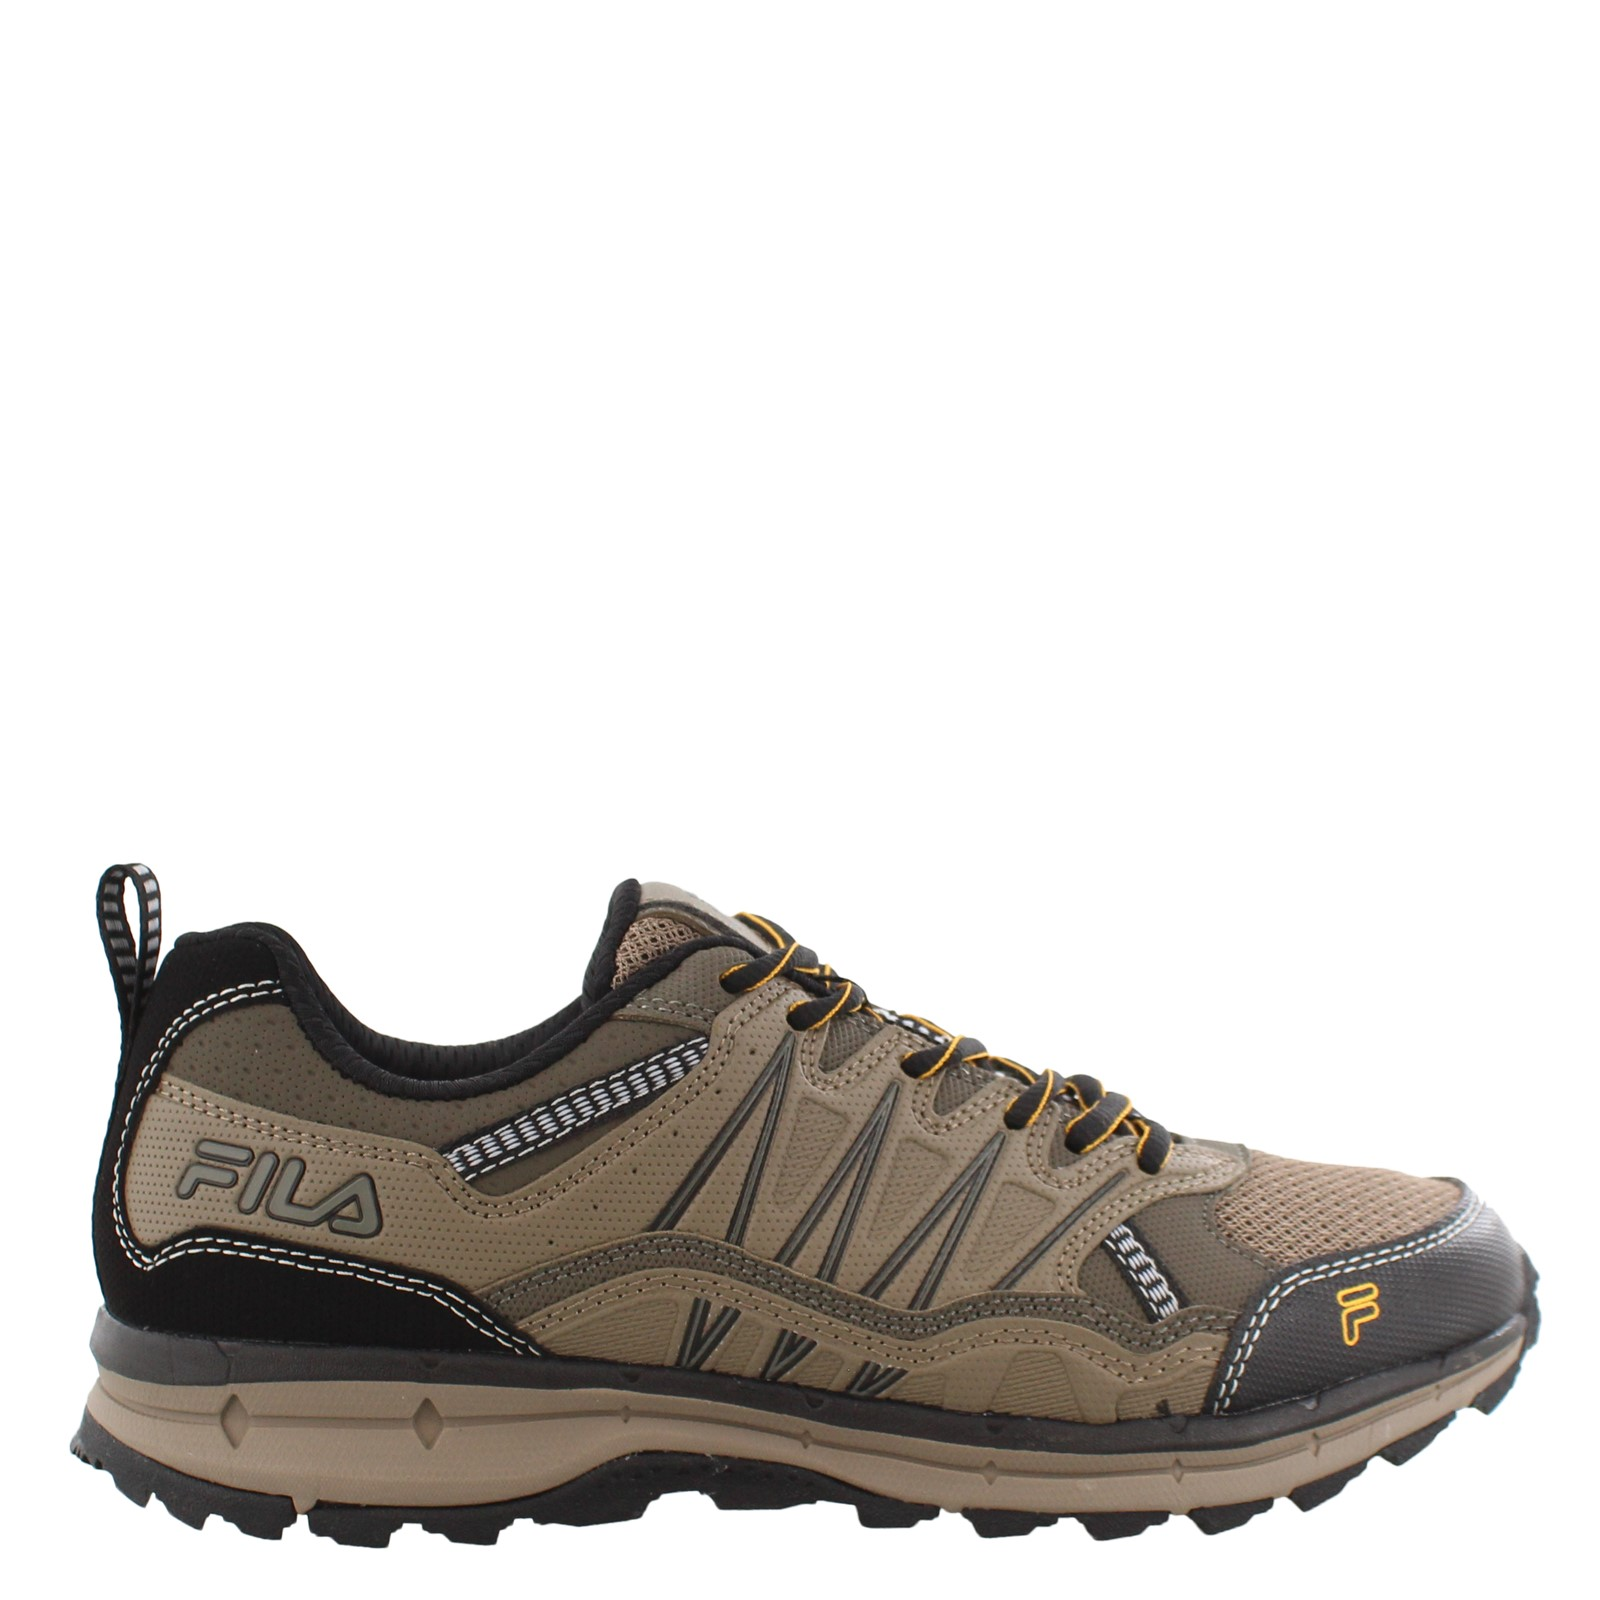 Men's Fila, Evergrand TR Trail Running Sneakers